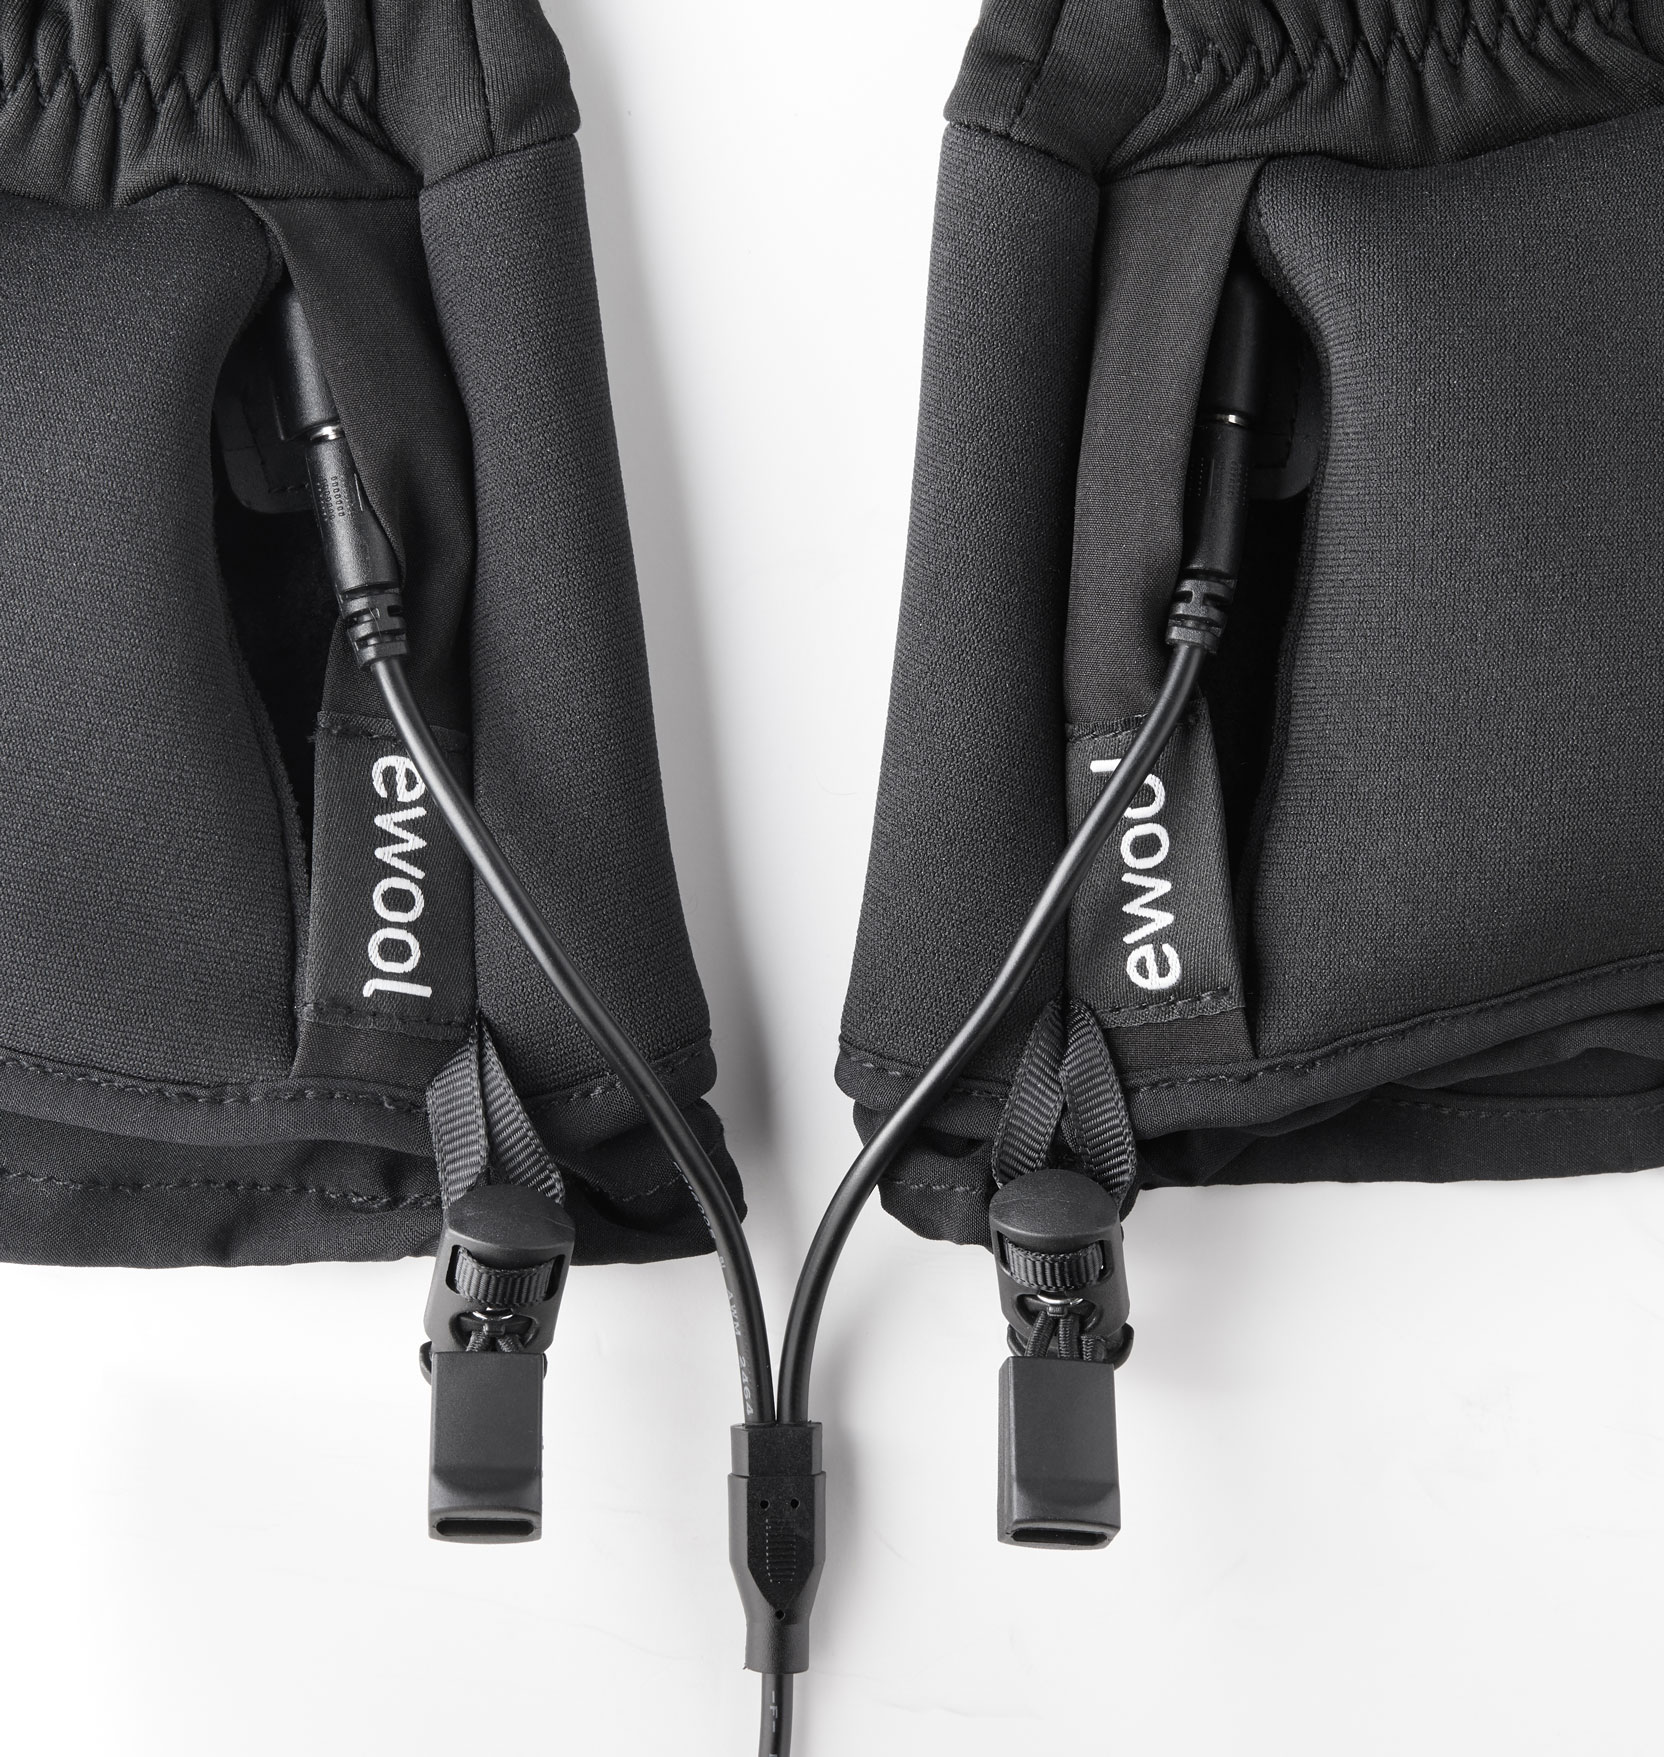 ewool® heated glove liners charging